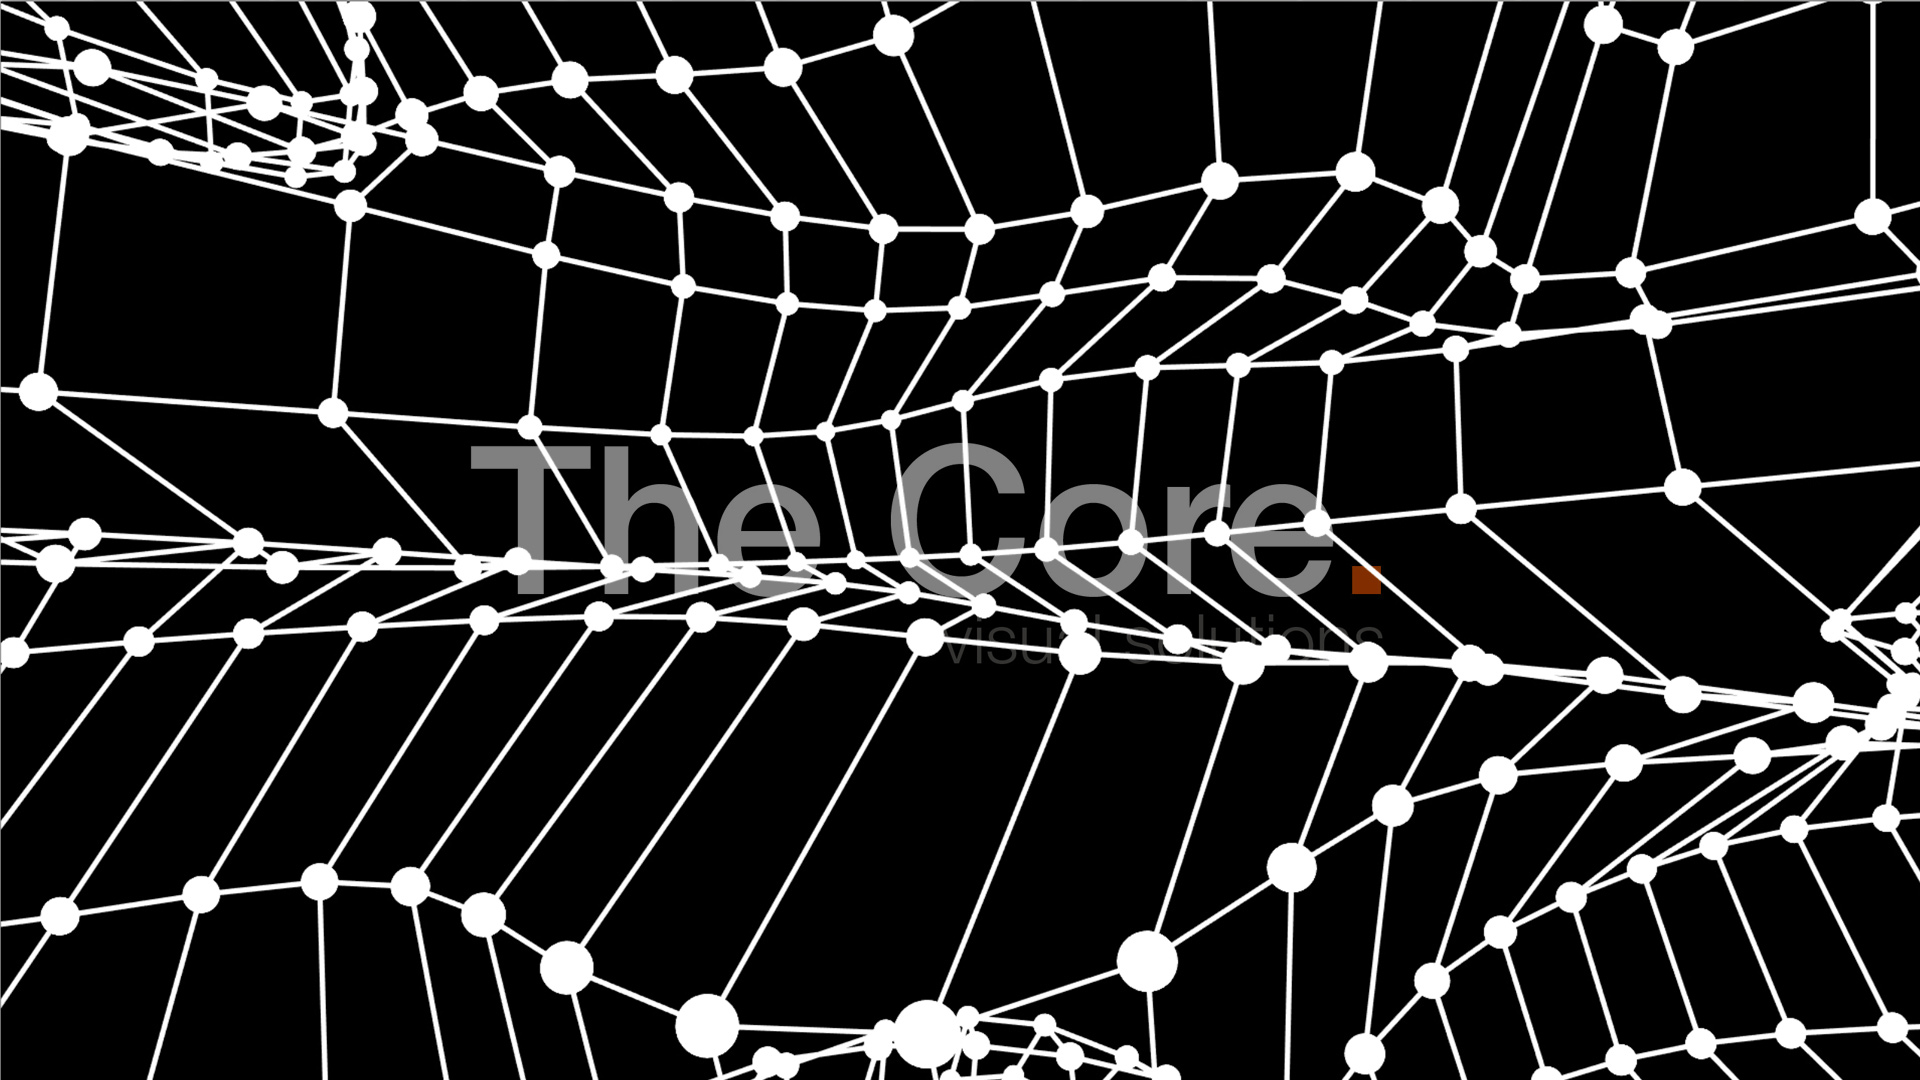 00057-WIRE-GRID-WAVING-1-STILL